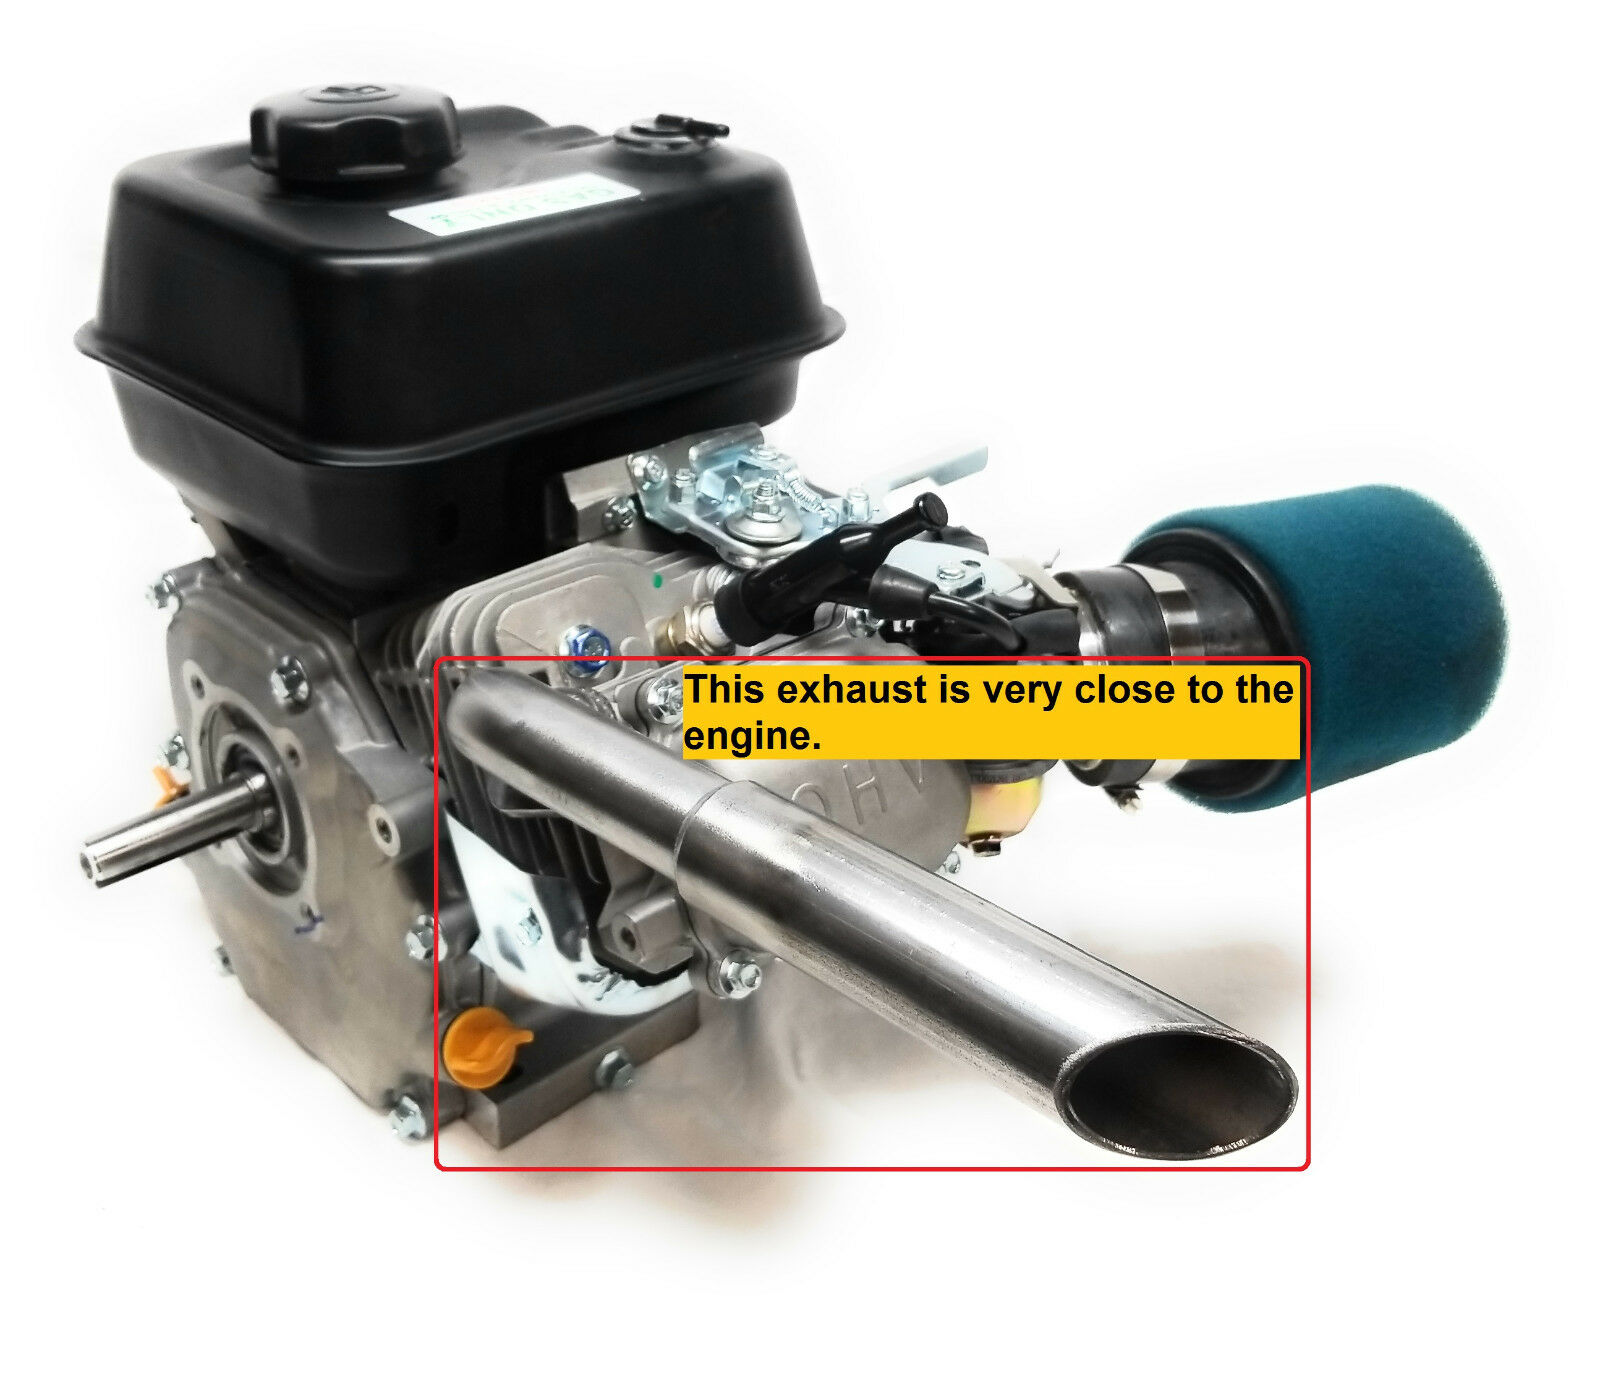 Low  Profile Exhaust, Predator 212cc, Honda GX160, GX200. Go Kart & mini bike  stadium giveaways